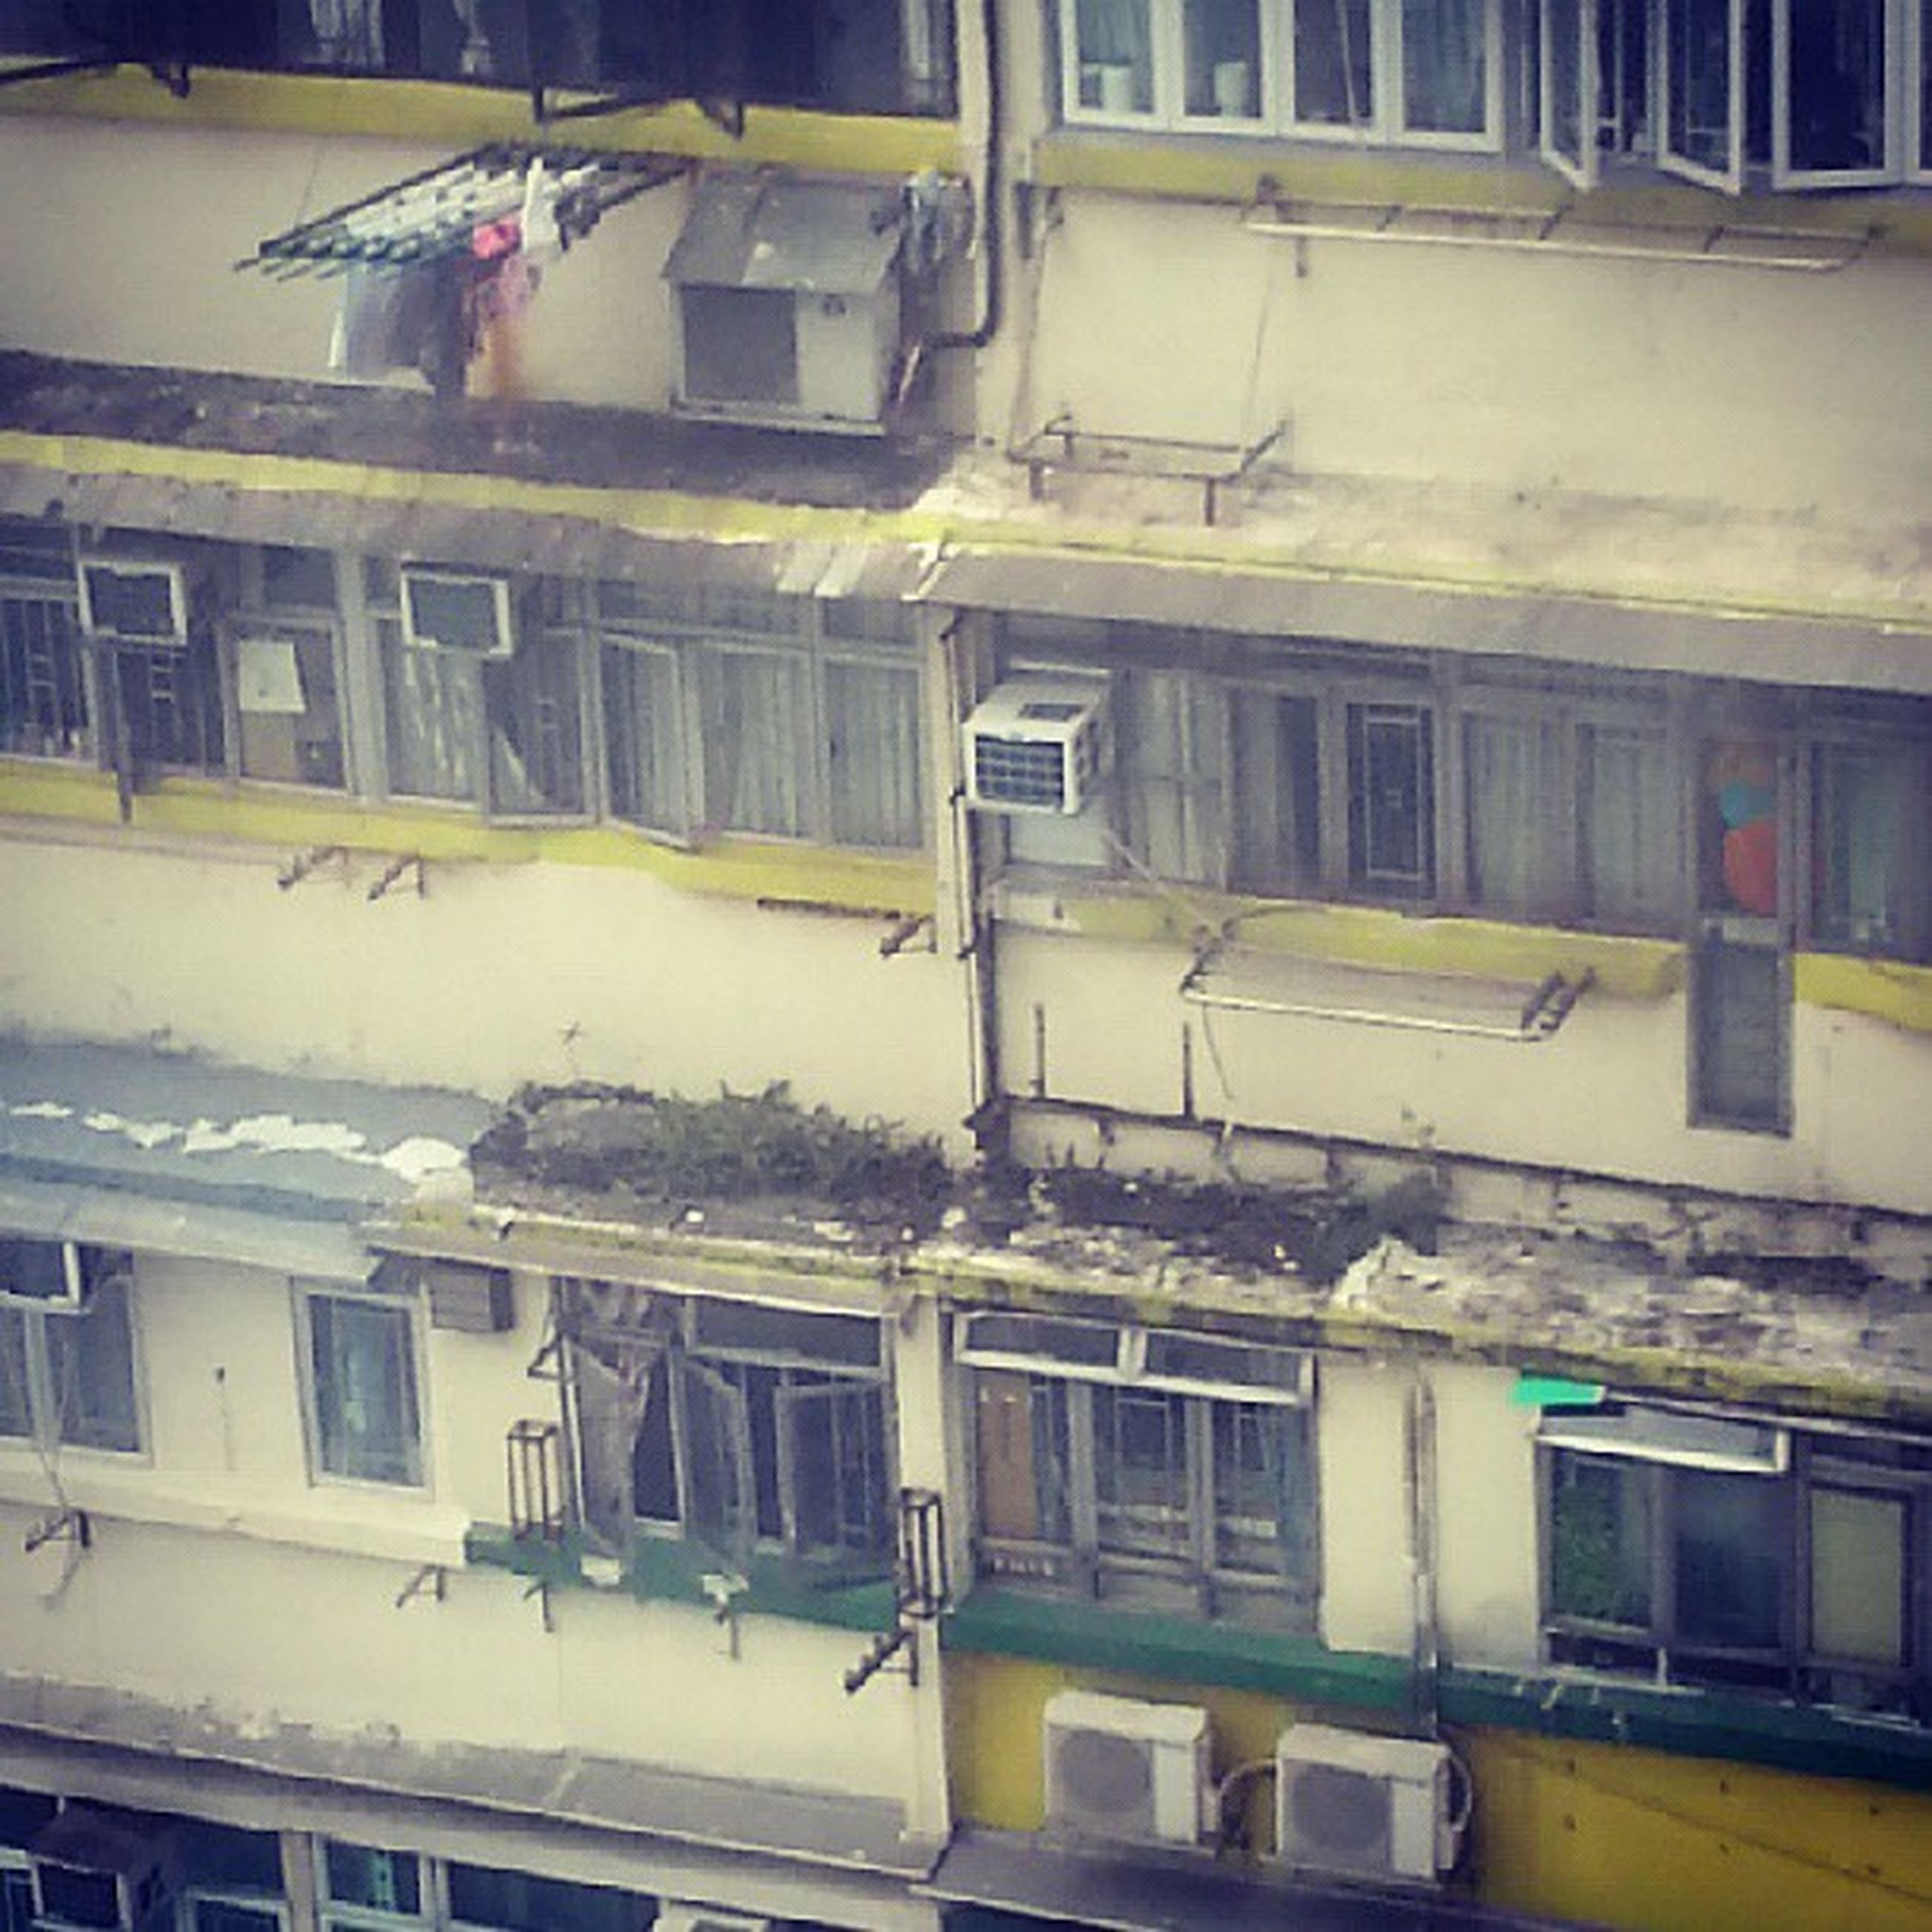 building exterior, architecture, built structure, window, residential building, residential structure, building, house, transportation, mode of transport, city, day, no people, outdoors, balcony, old, abandoned, exterior, sunlight, apartment